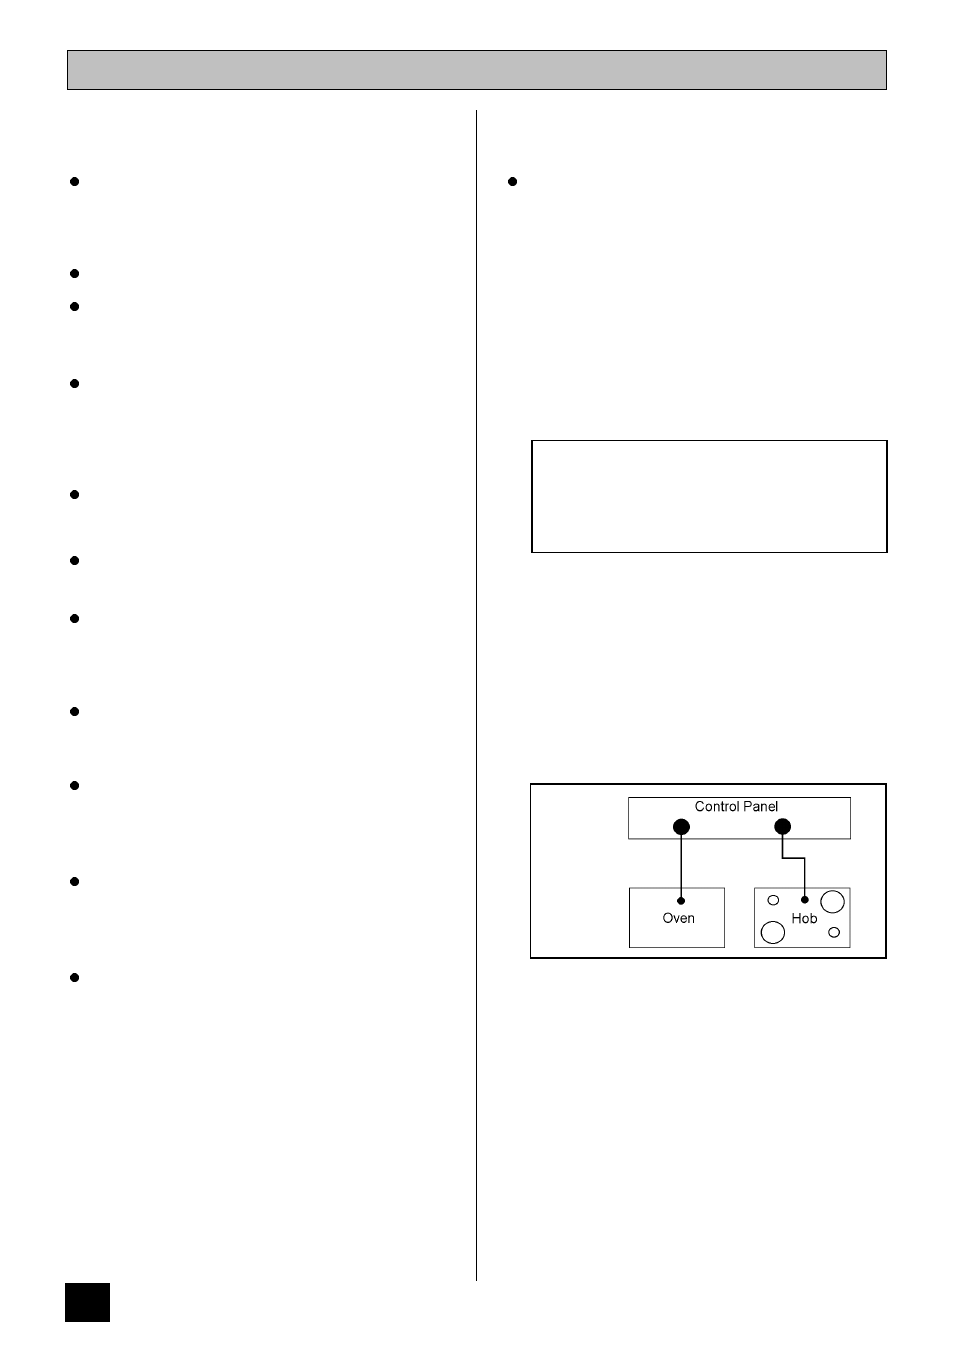 Installation instructions | Tricity Bendix BD 911 User ... on electrical box diagram, electrical power cable, 3 to 4 electrical box, electrical wiring box, electrical extension cord box, electrical fuses small to largest, electrical valve box, electrical safety signs, circuit breaker box, main electrical box, electrical panel box, electrical inductor box, electrical distribution box, wiring a 3 gang switch box, electrical power box, electrical switch box, solid state relay box, electrical chassis control module, electrical wiring details, electrical box cut out,